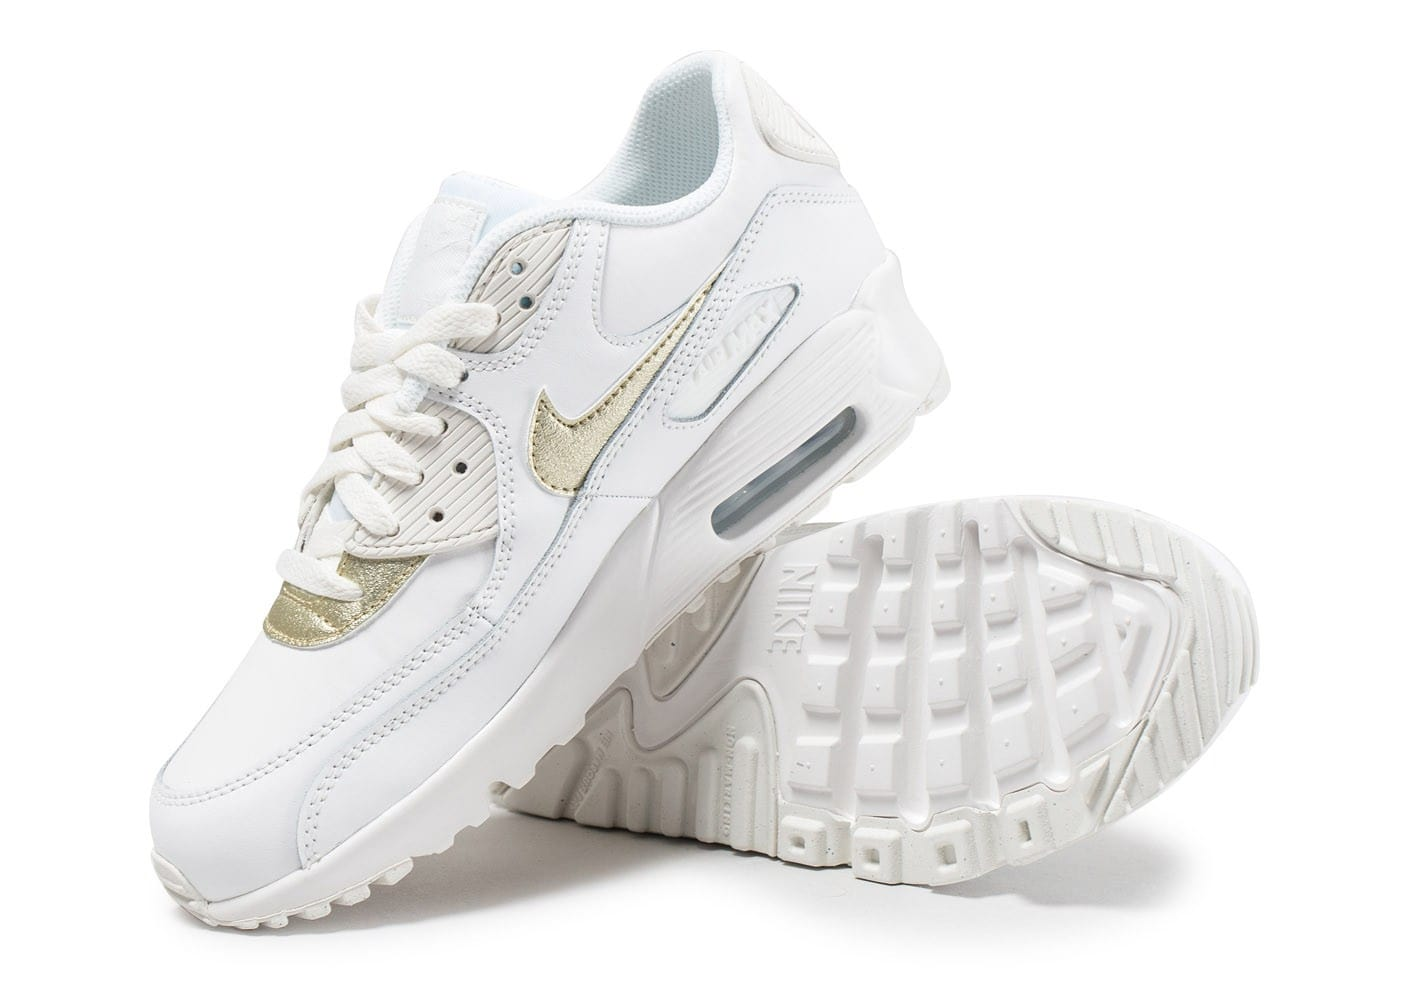 super mignon 4bc04 8a187 Nike Air Max 90 Leather Junior blanche et or - Chaussures ...